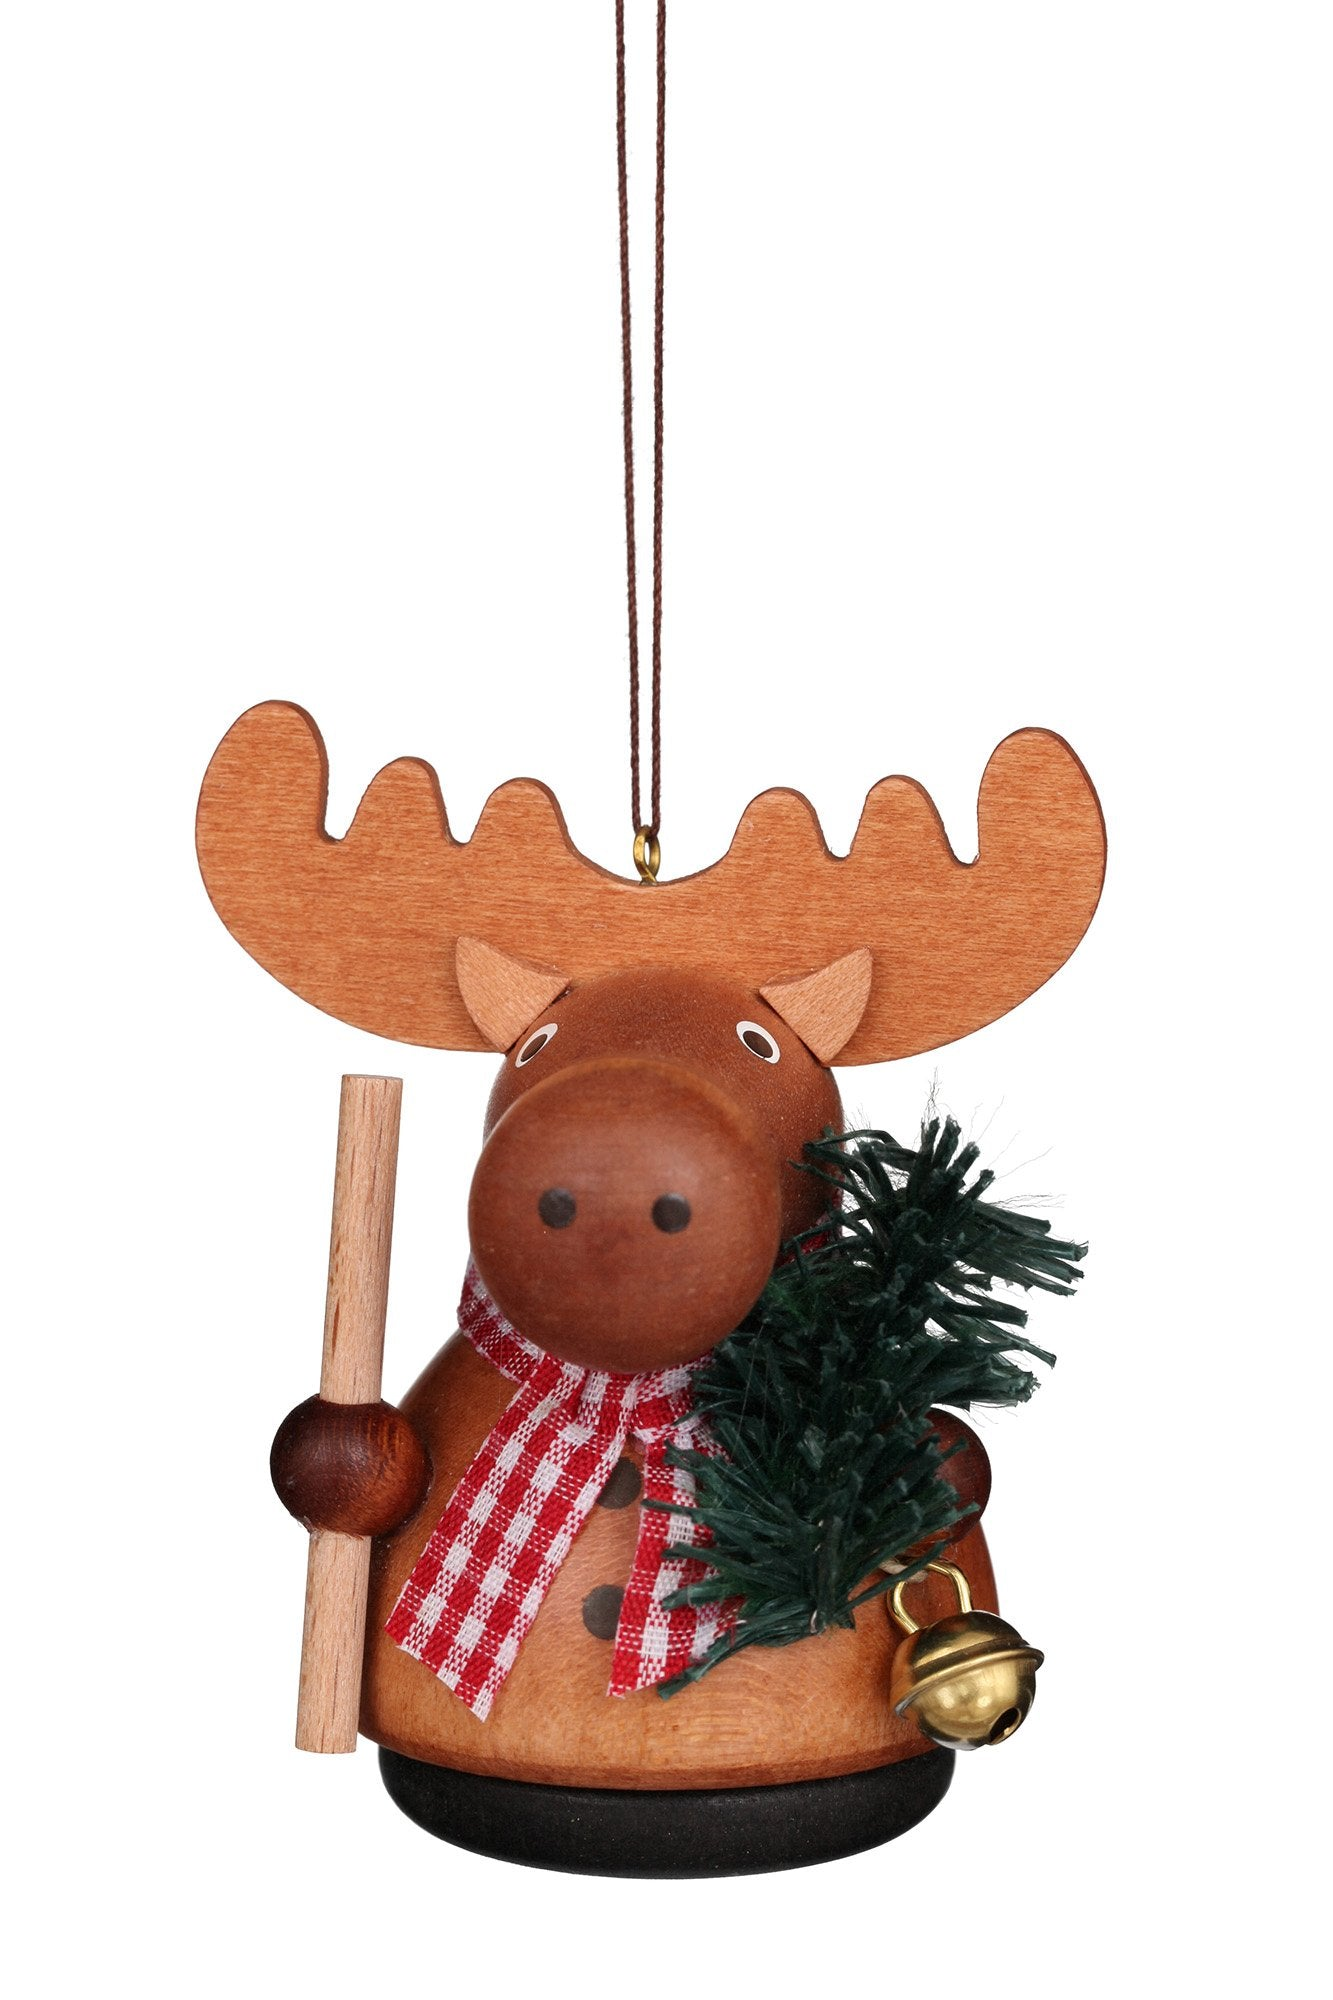 Little Gnome Christmas Tree Decoration - Natural moose